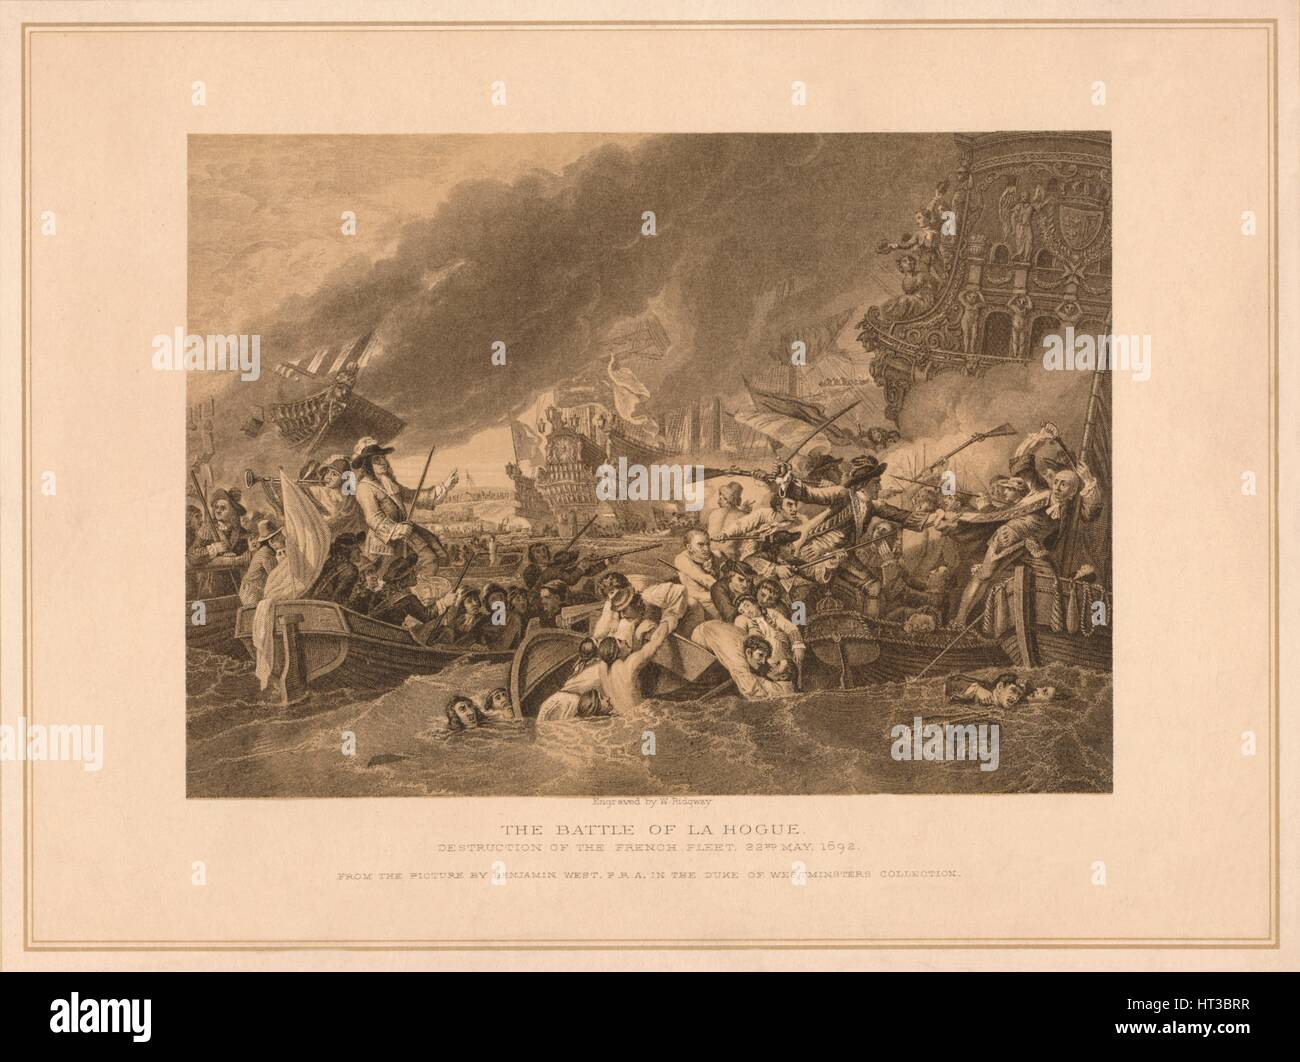 'The Battle of La Hogue', 1692 (1878). Artist: W Ridgway. - Stock Image